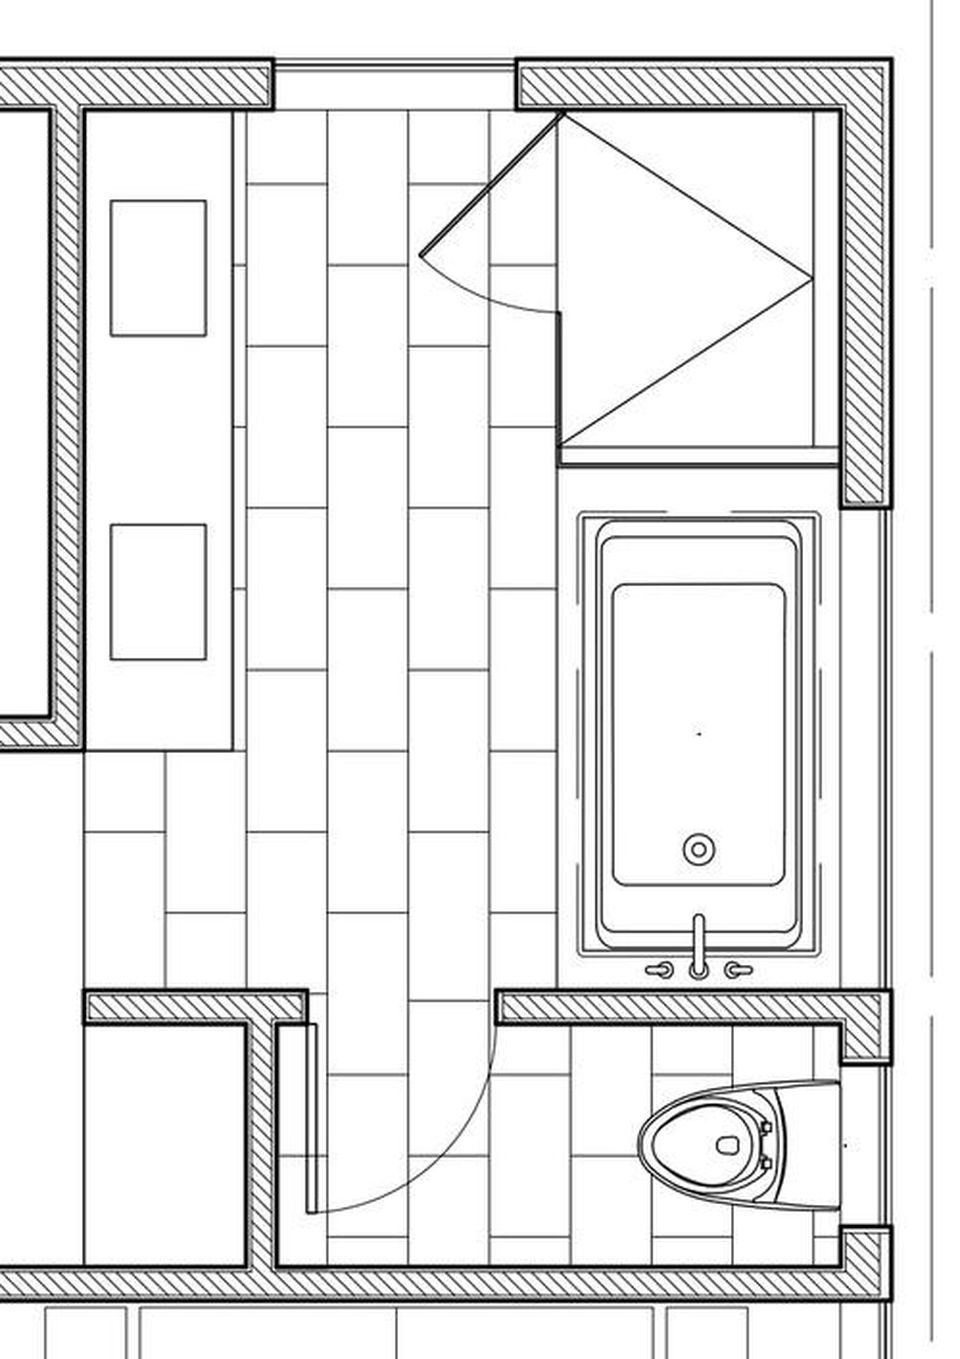 7 Bathrooms That Prove You Can Fit It All Into 100 Square Feet Bathroom Floor Plans Bathroom Design Layout Square Feet